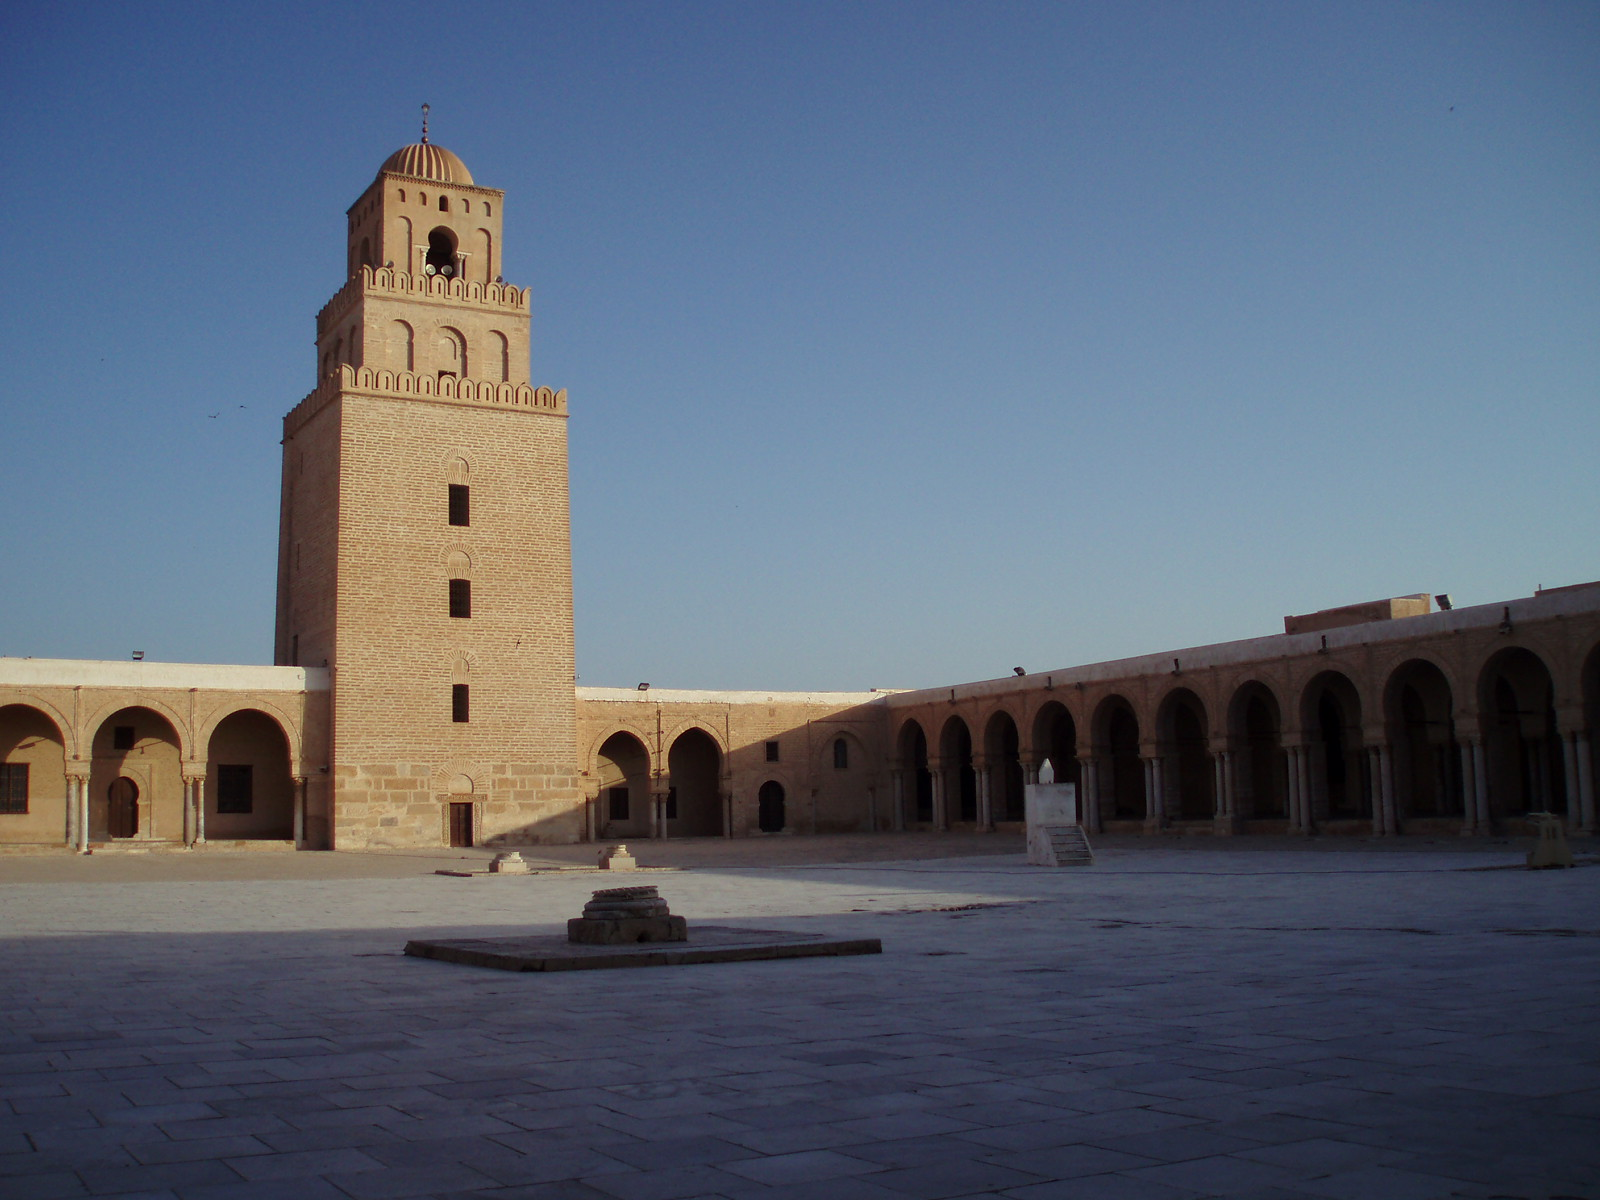 Kairouan Mosque Wiki File:great Mosque of Kairouan